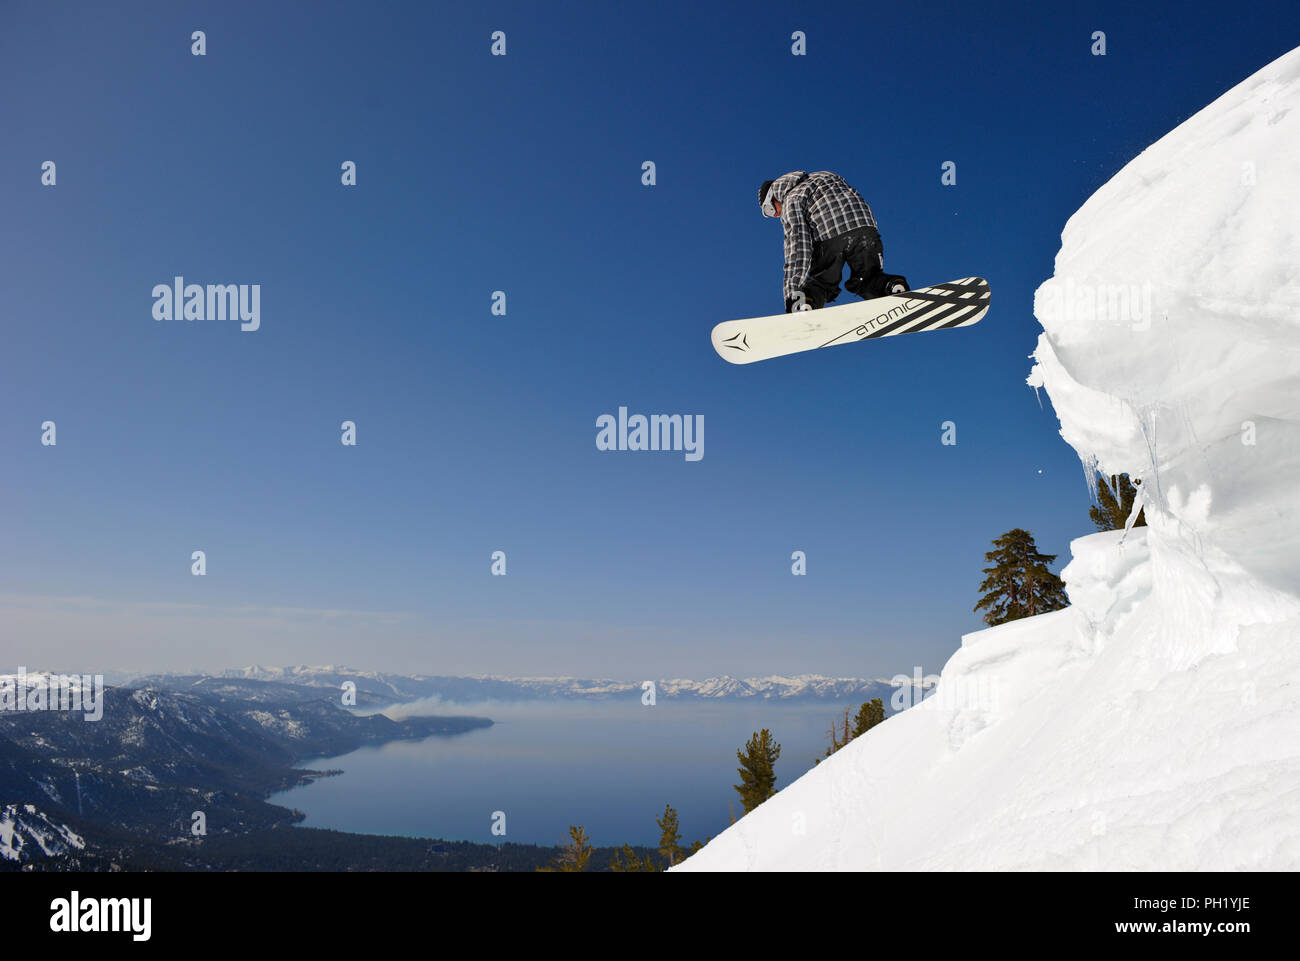 Snowboarder Nick Langkamp on top of Incline Peak with North Lake Tahoe in the background on a clear day. Stock Photo